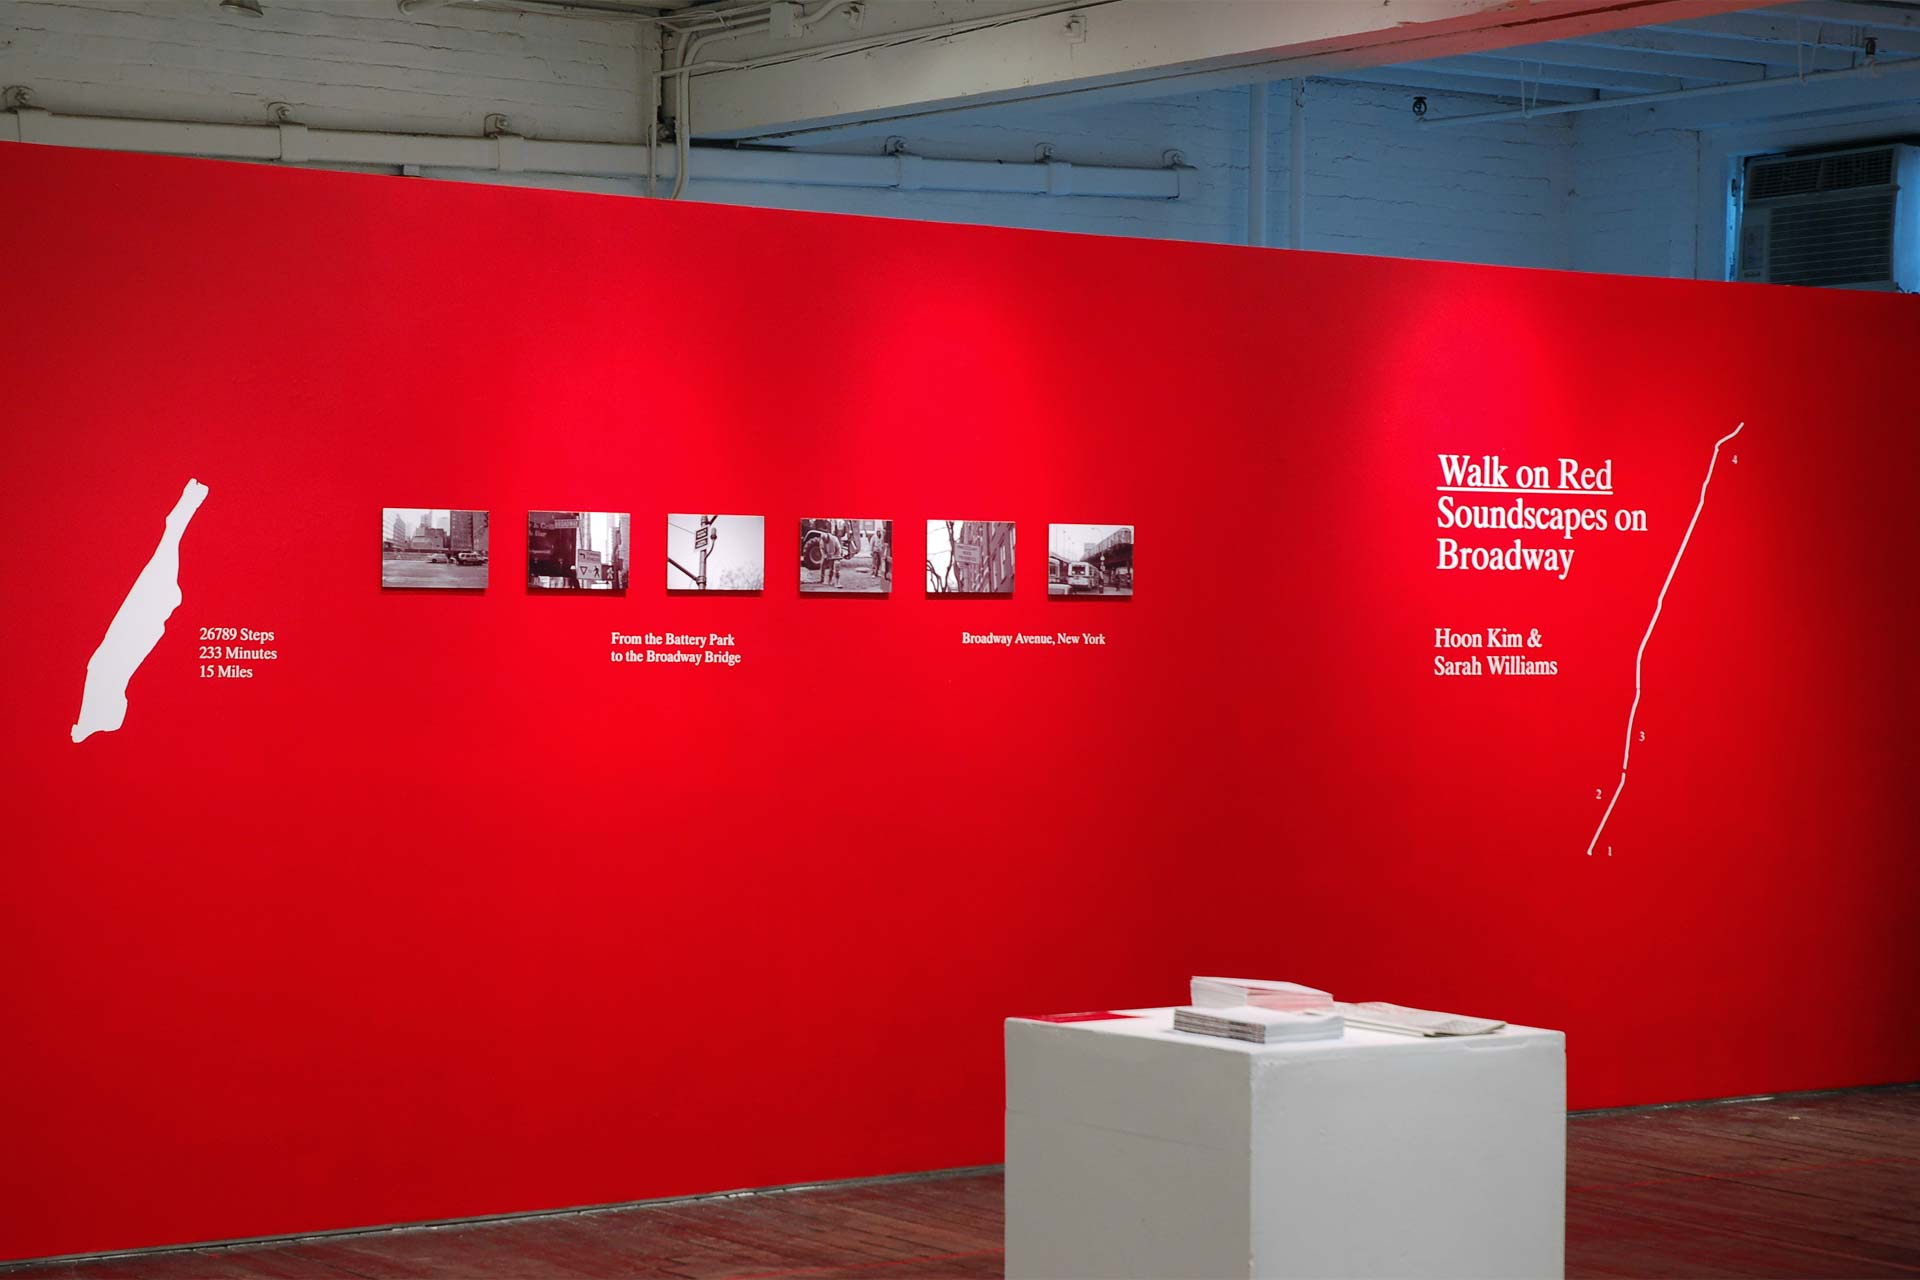 Walk on Red Exhibition